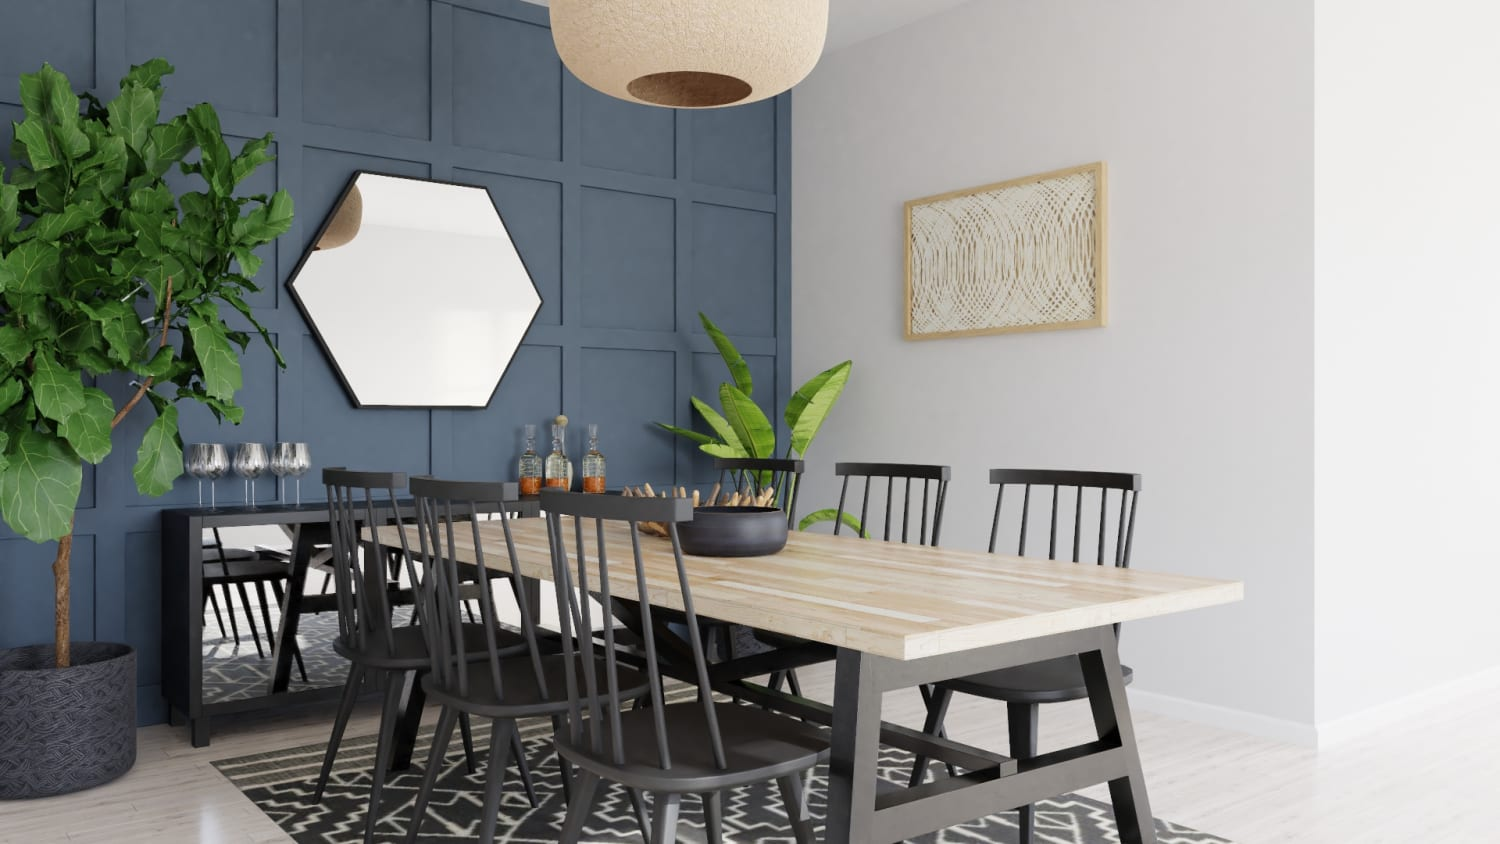 Dinner Party Seating: Modern Farmhouse Design By Spacejoy